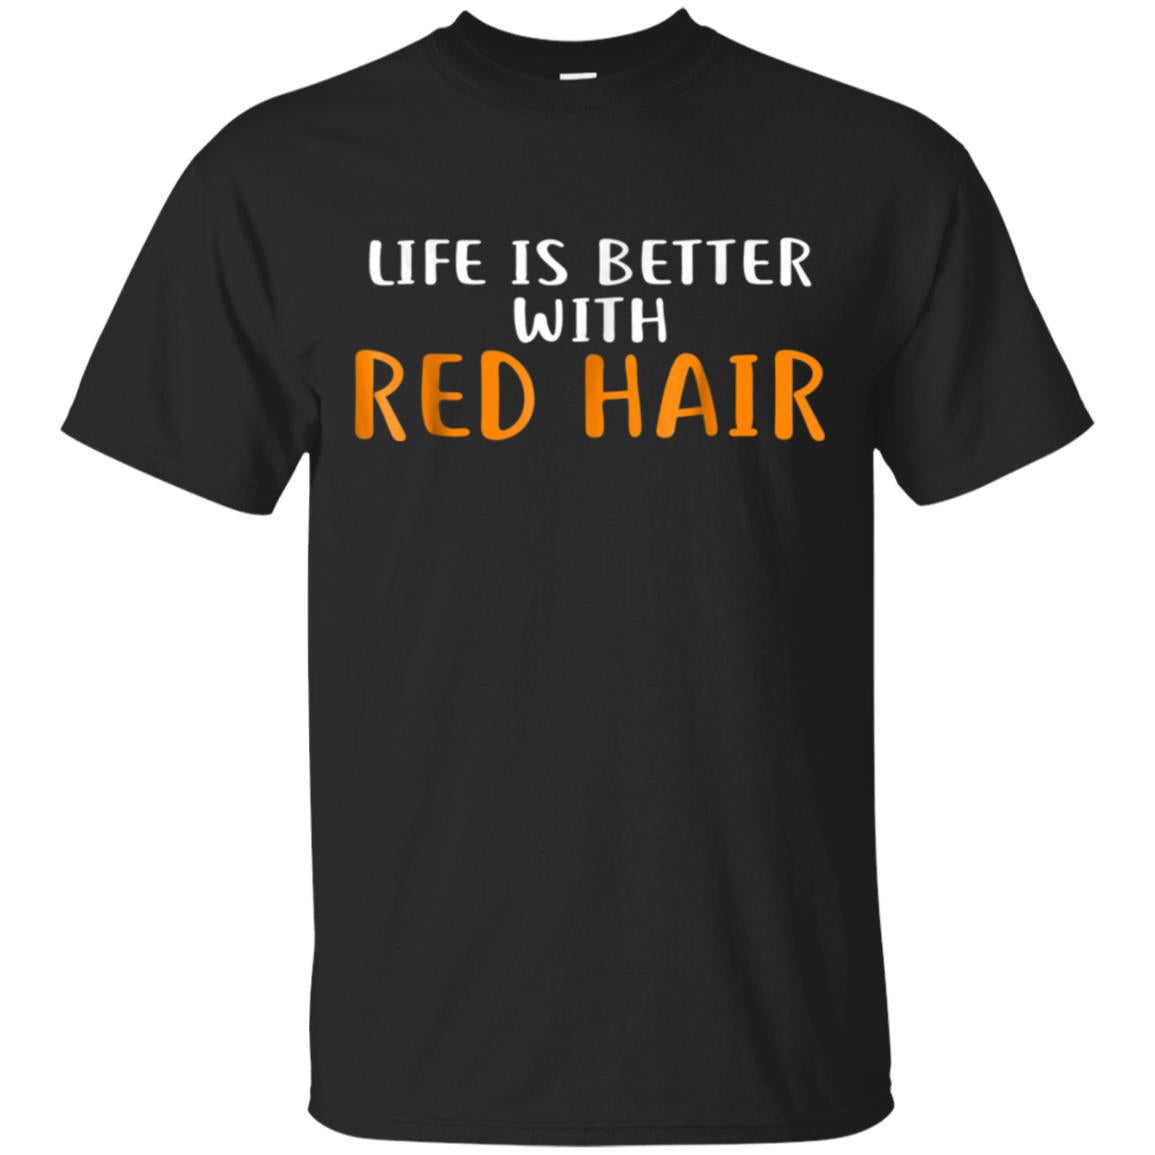 Life is Better With Red Hair T-Shirt Redhead Shirt Gingers 99promocode